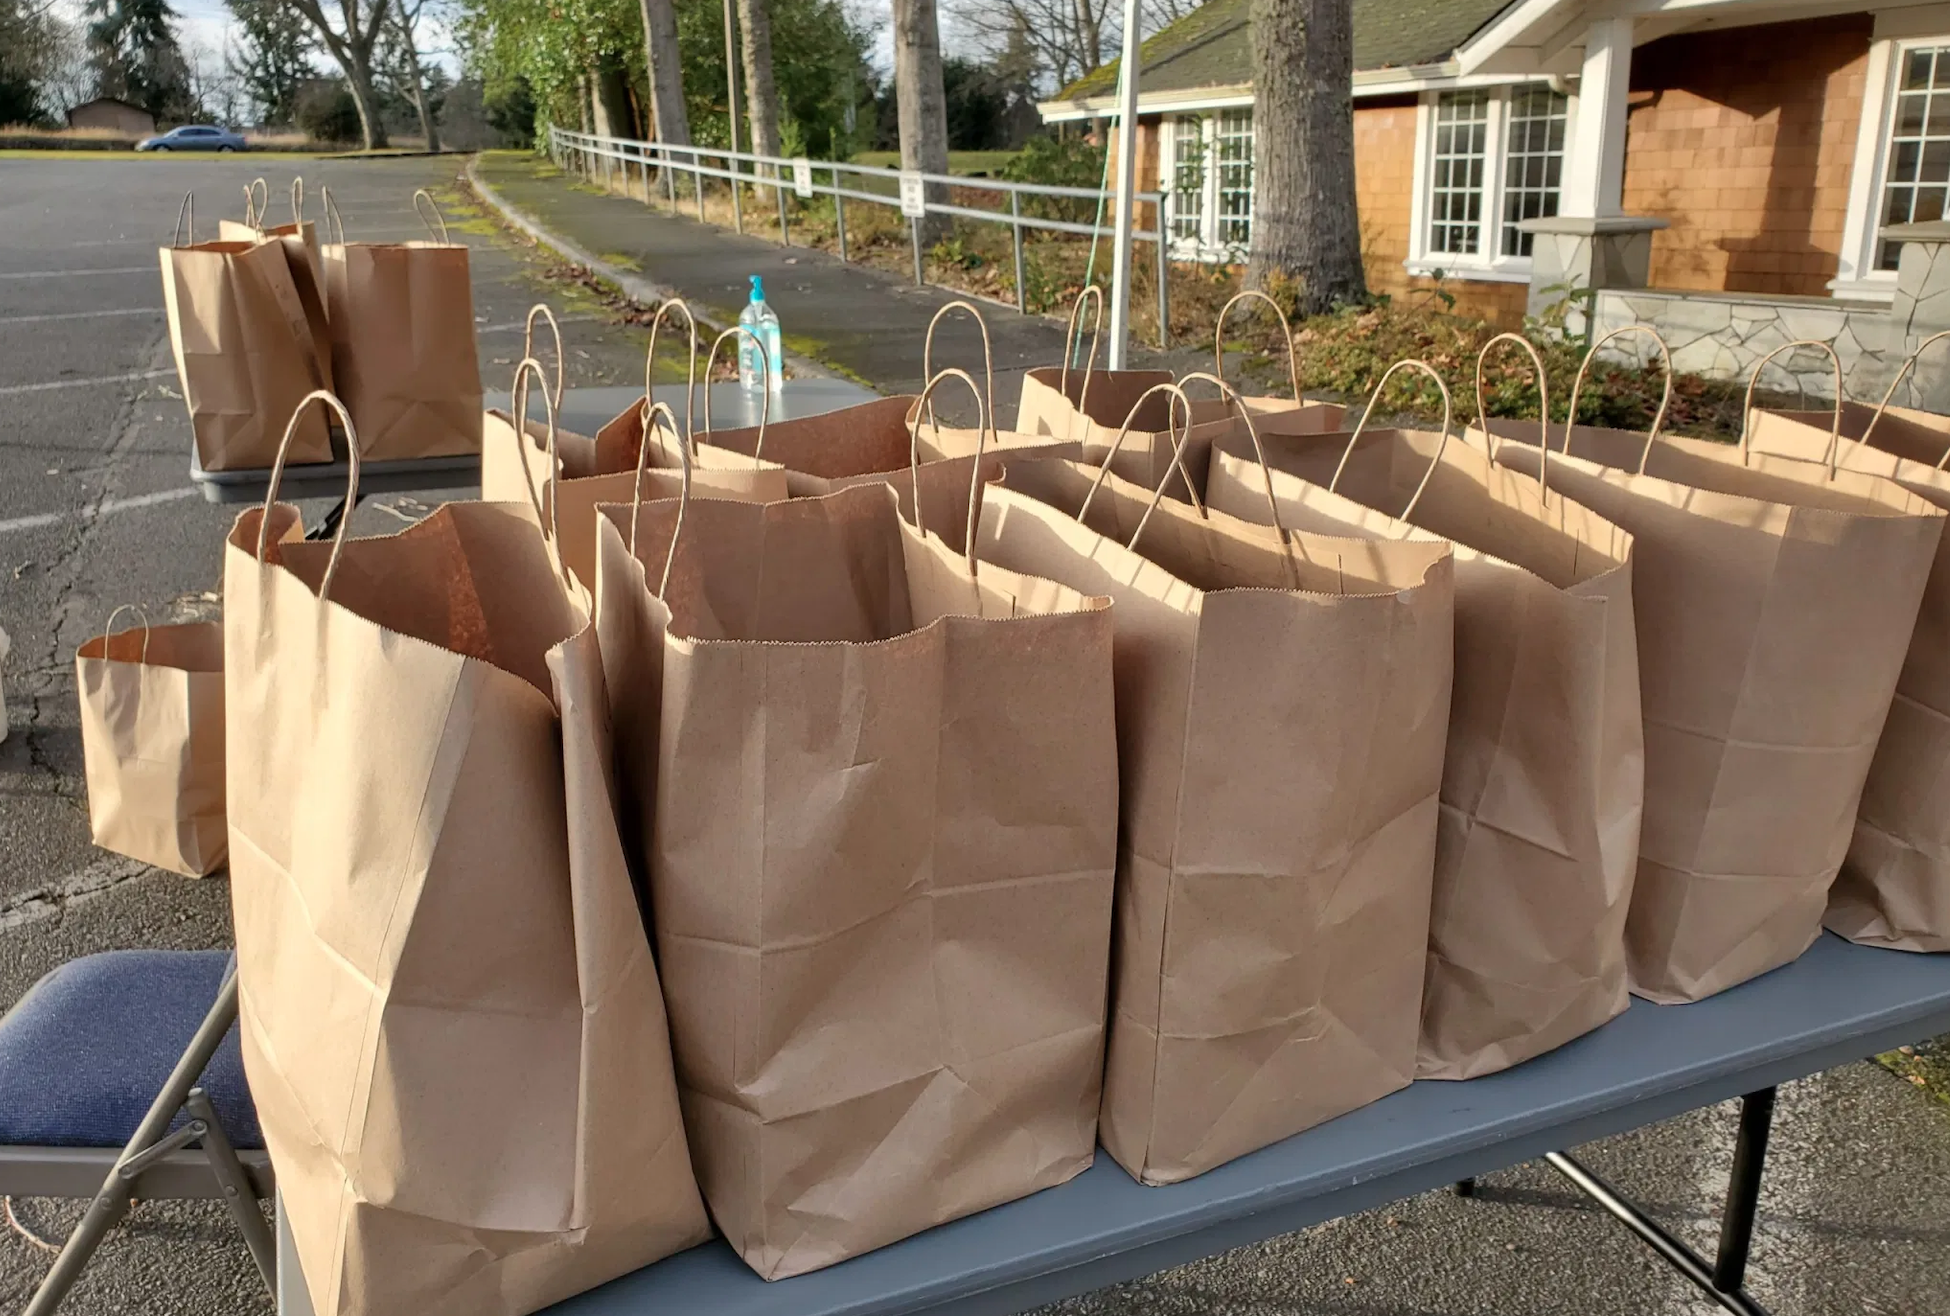 Bags of food to be donated to students